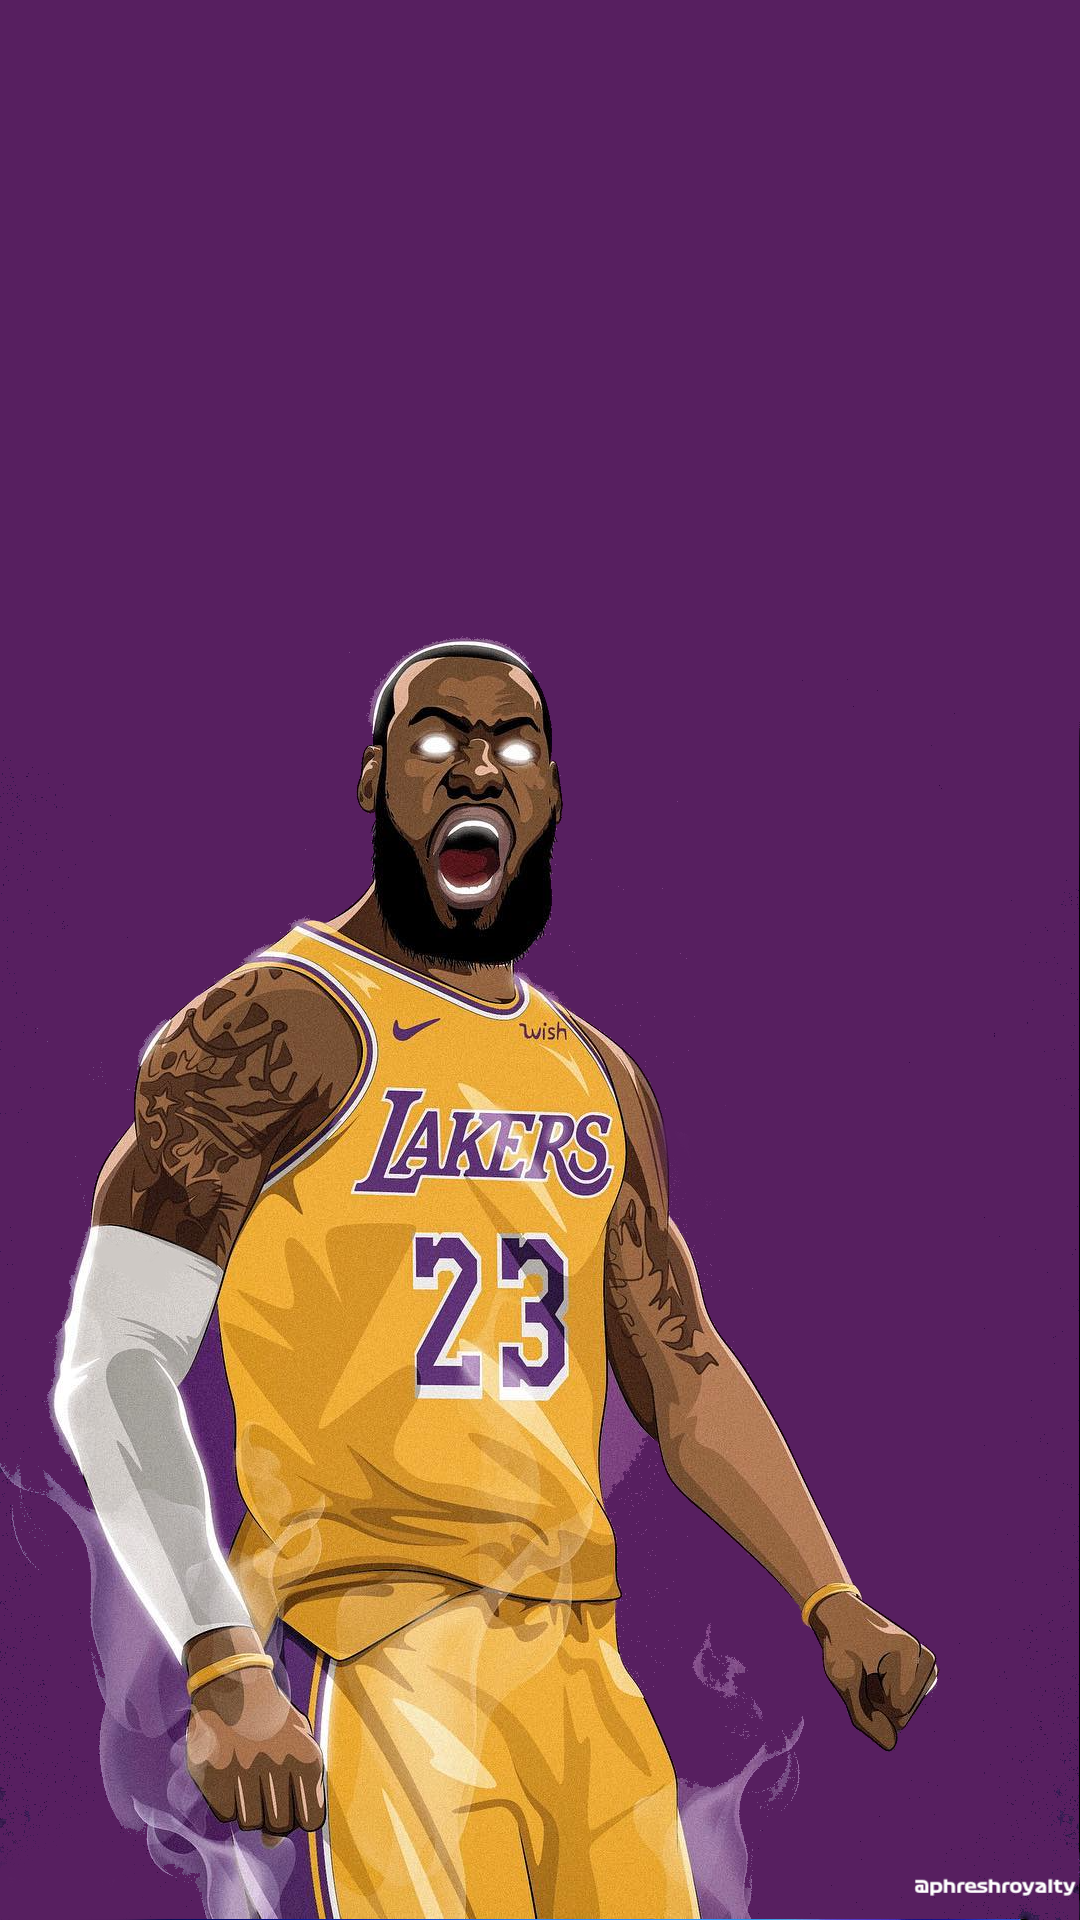 Lakers Anthony Davis Wallpaper Hd in 2020 Lebron james